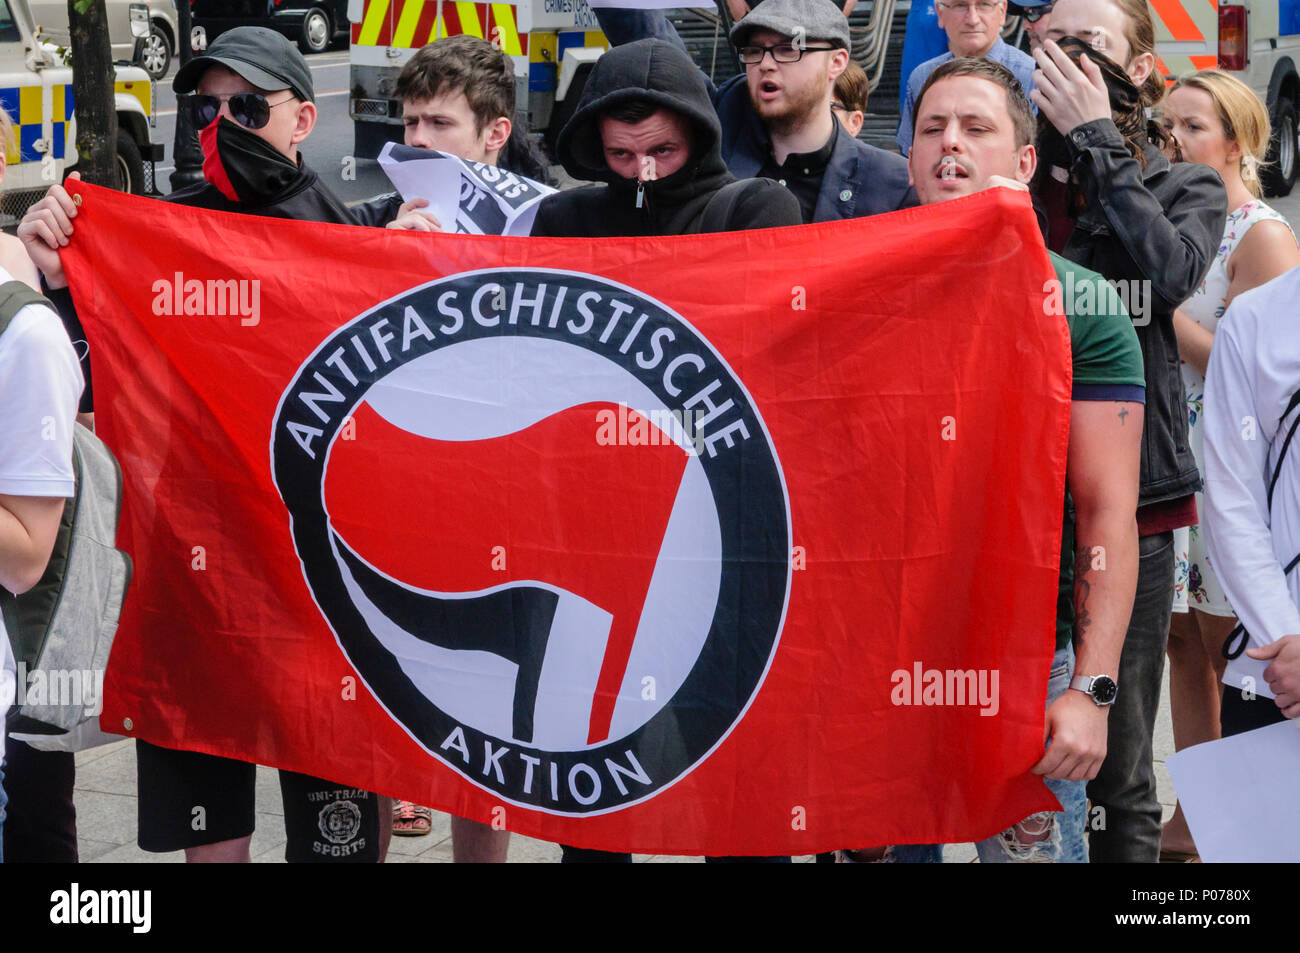 Belfast, Northern Ireland. 09/06/2018 - Northern Ireland Antifa members, many with their faces covered, protest against a rally in support of British First's Tommy Robinson, jailed in May 2018 for contempt of court. - Stock Image